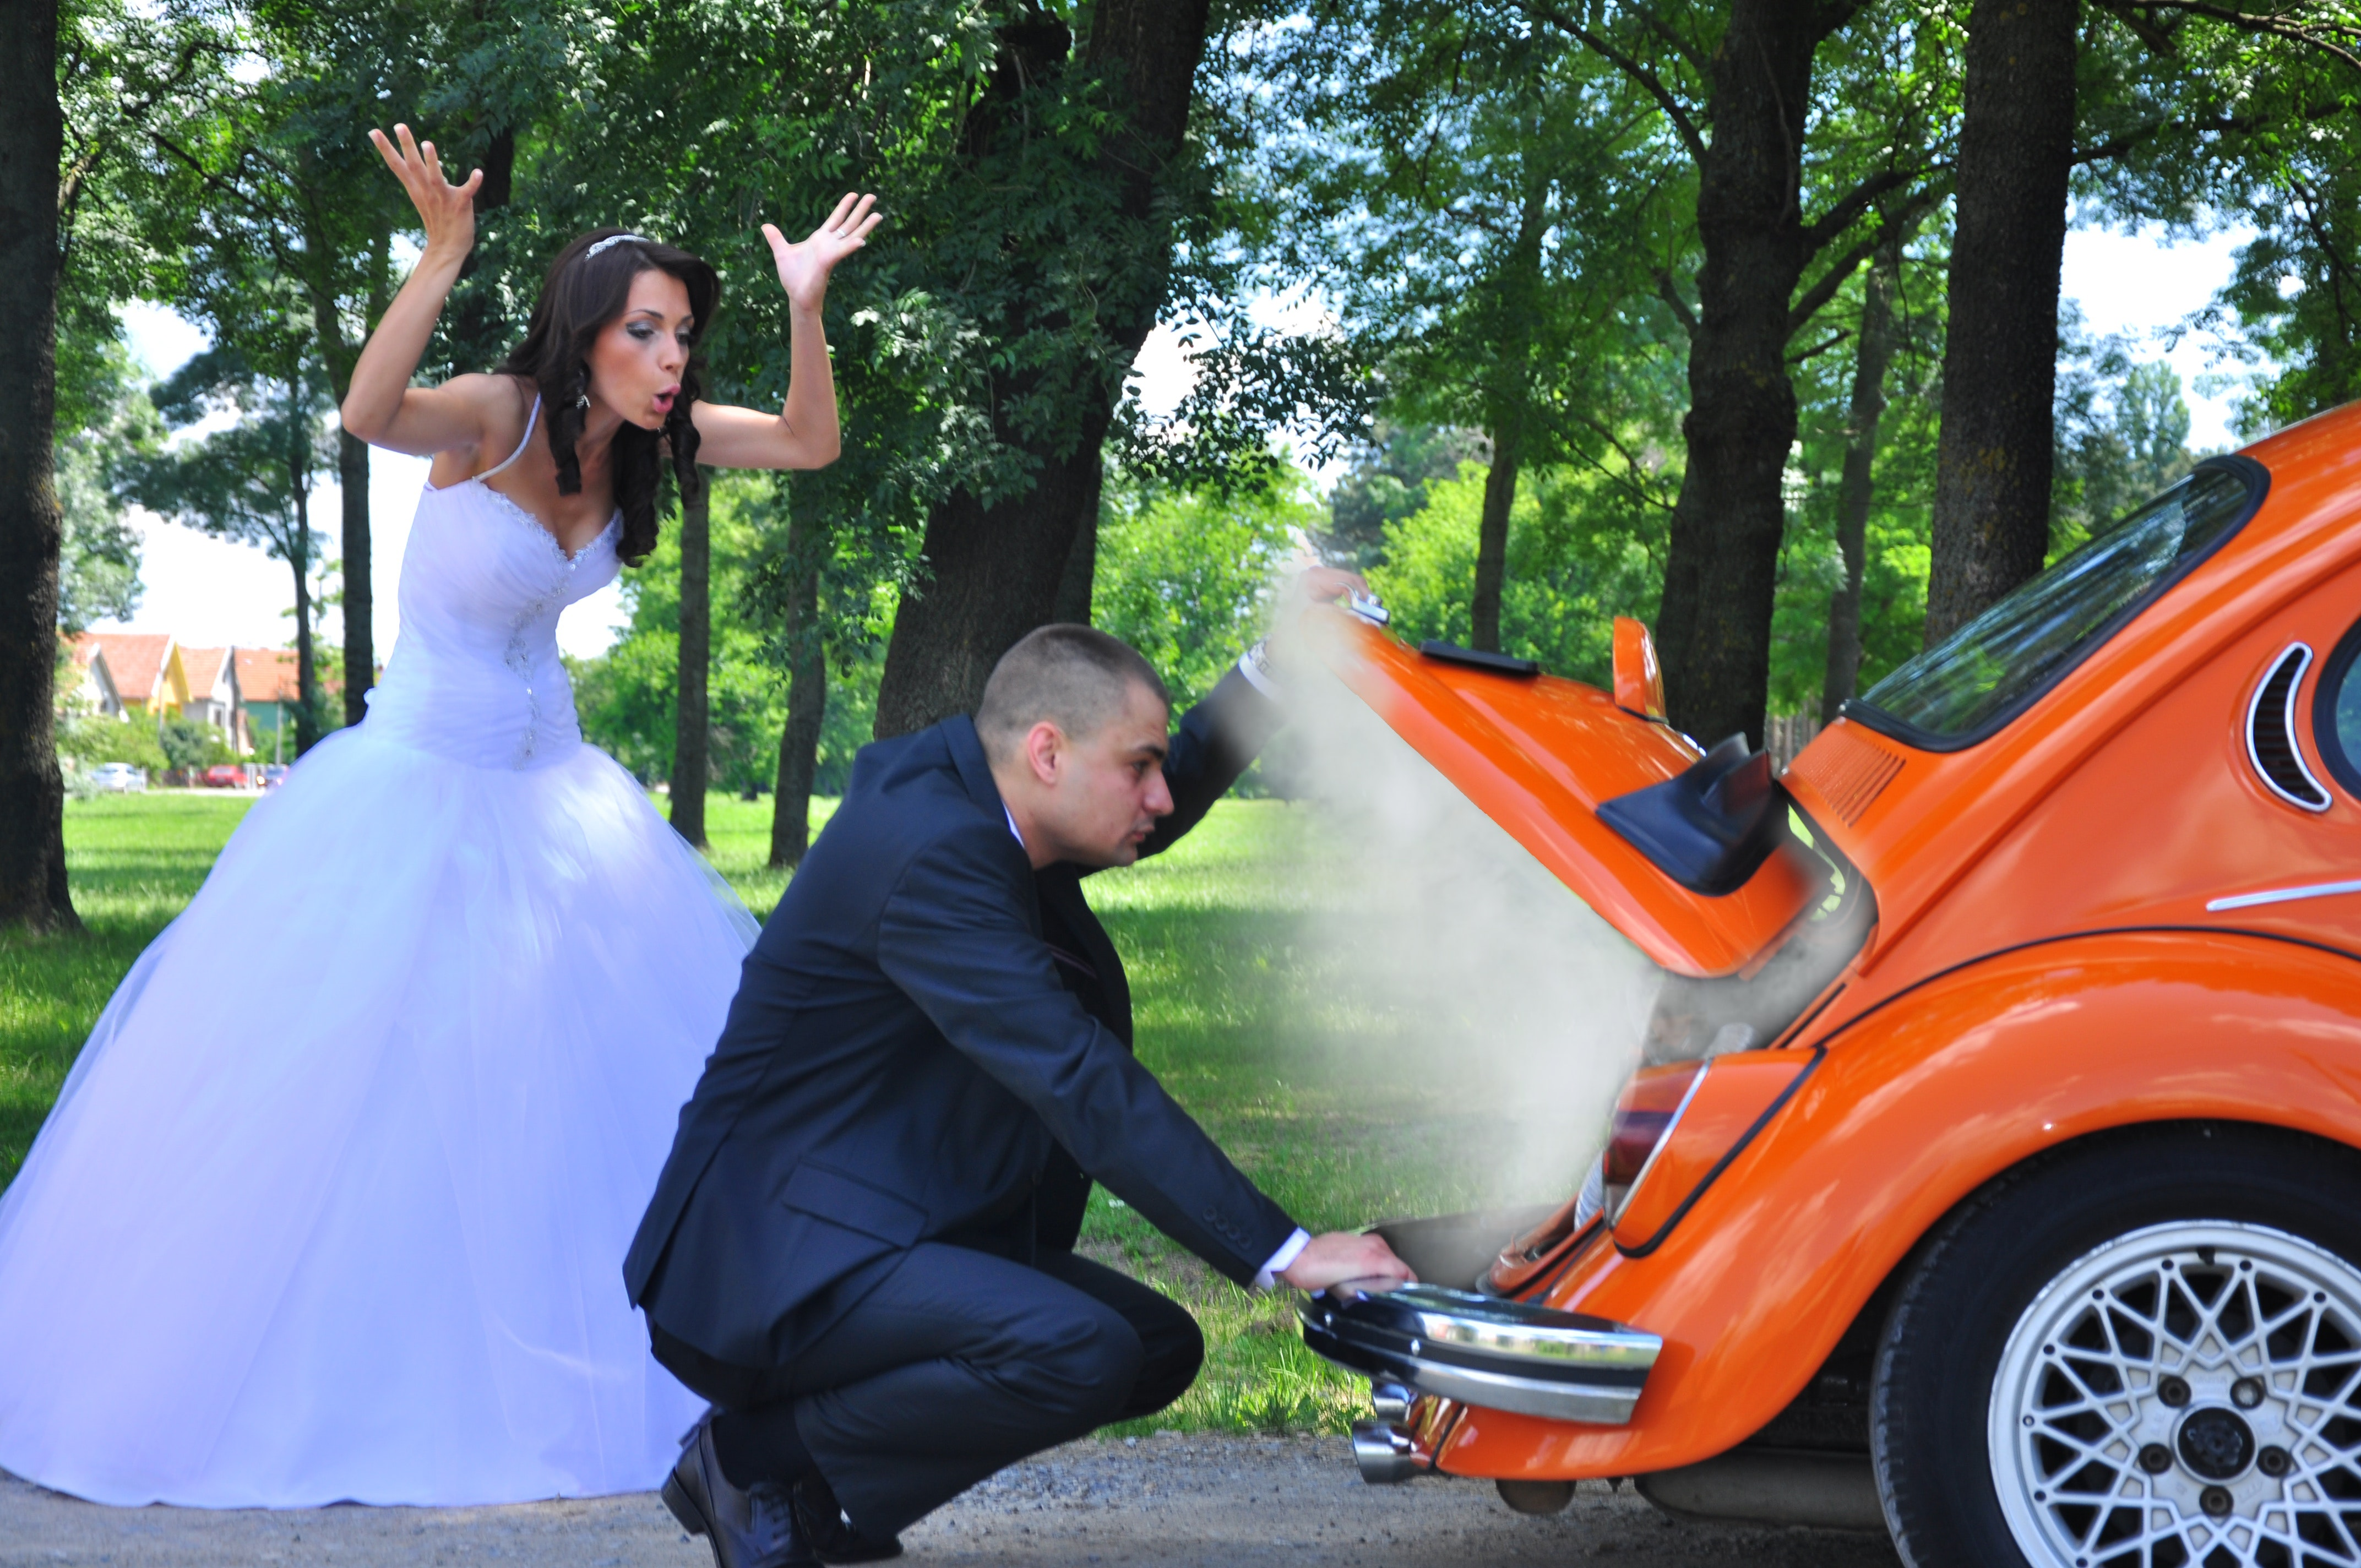 Woman in White Wedding Gown Near Orange Car, Trees, Park, People, Pose, HQ Photo